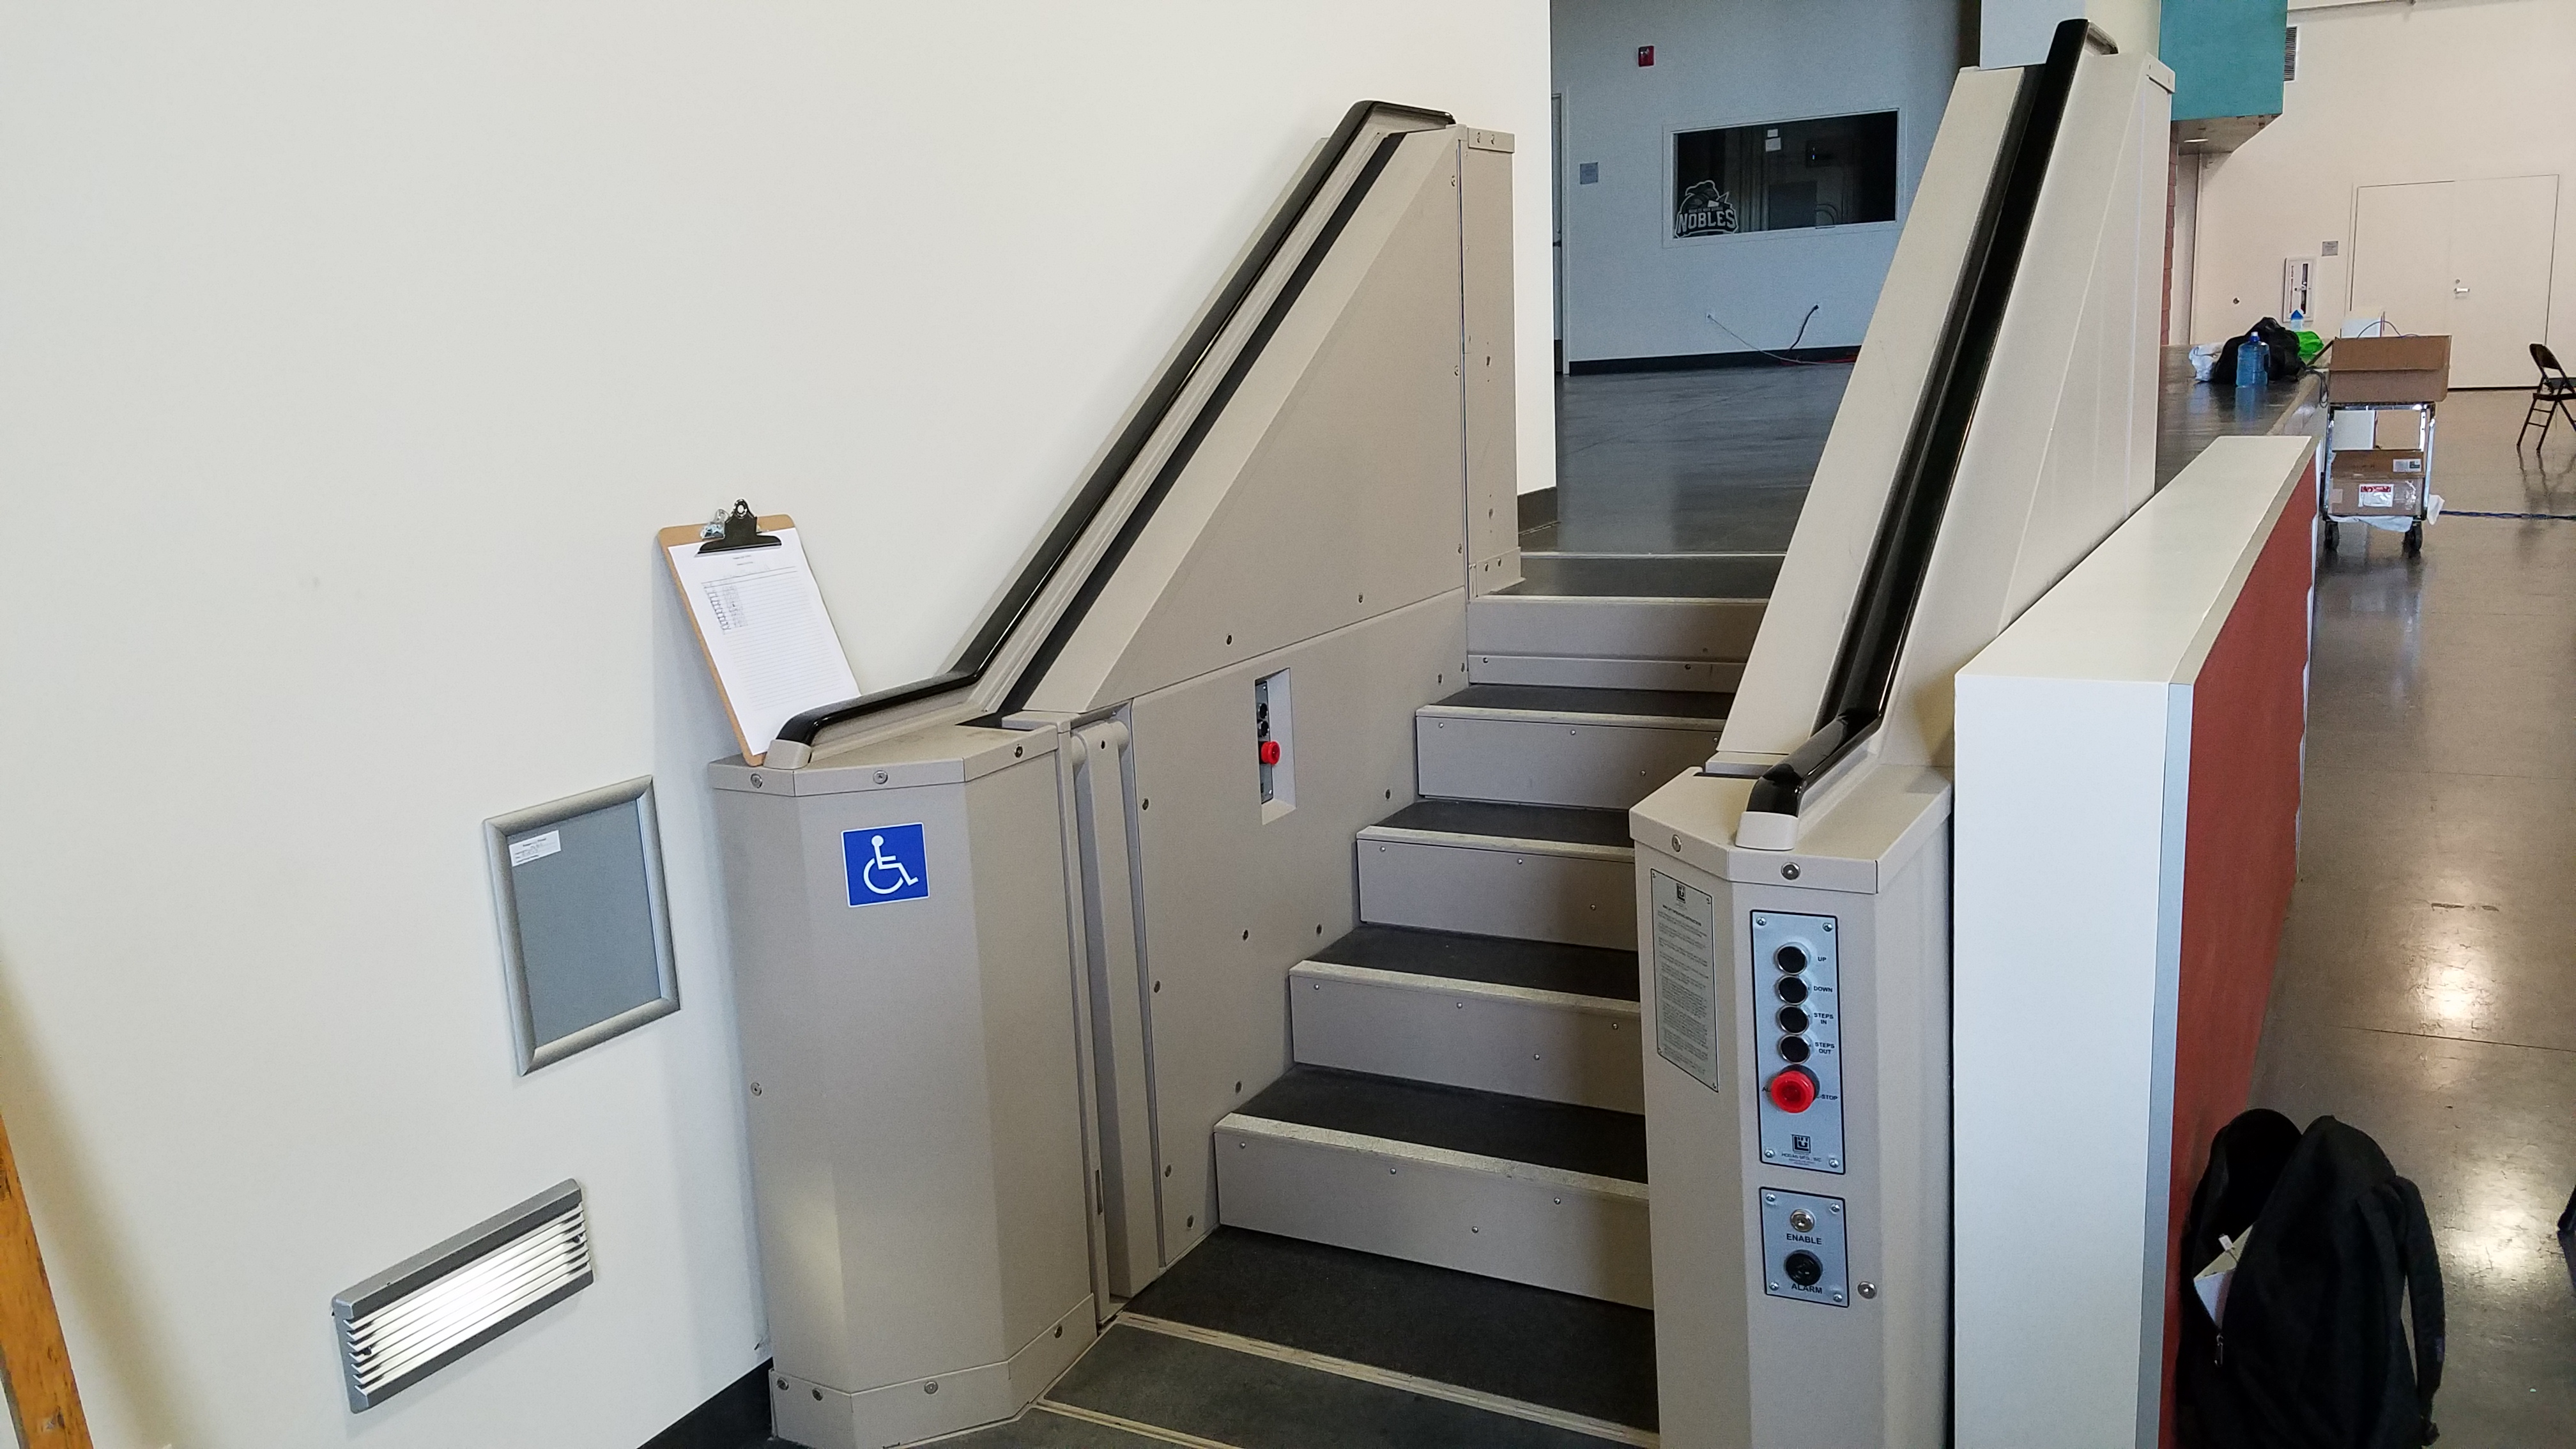 Tan in color. In step position for ambulatory access to stage. Lift function readily available, independently operable.